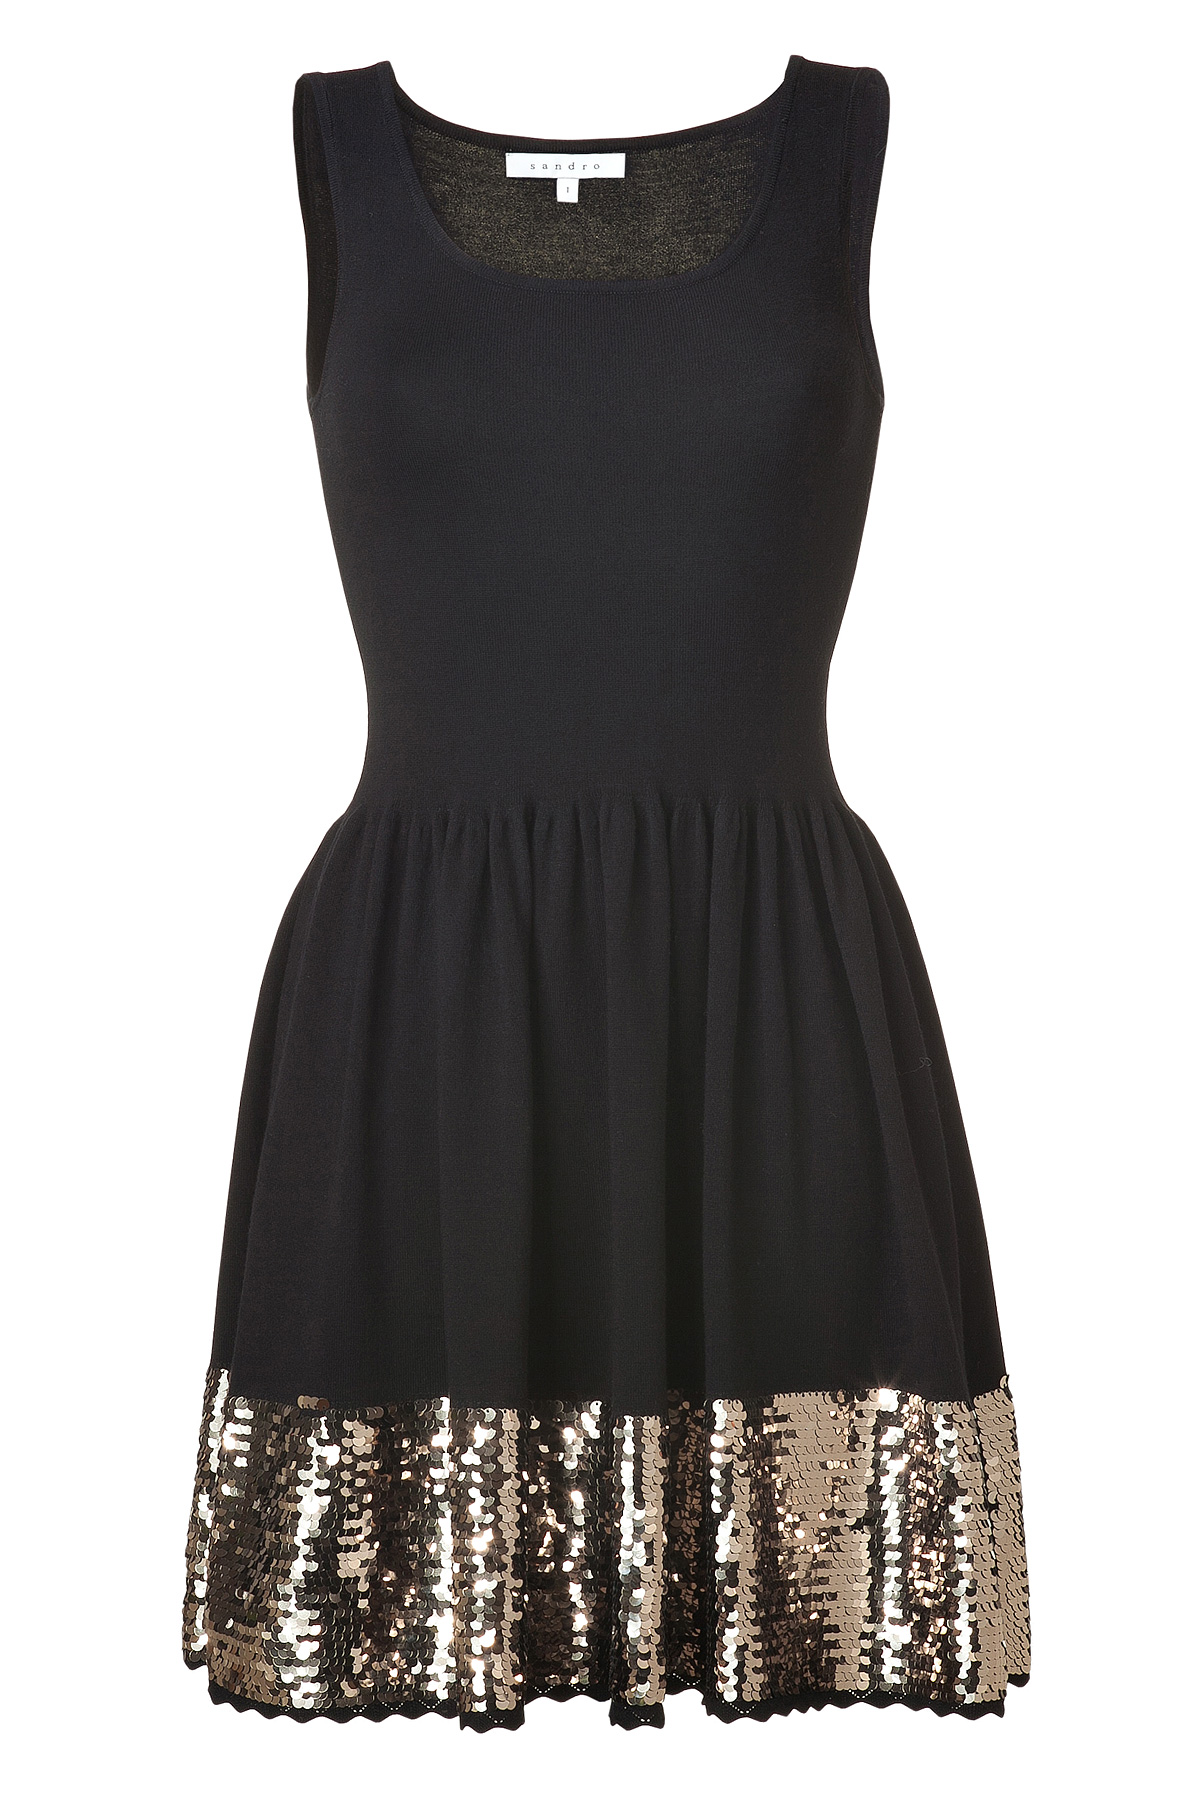 Stylebop Sandro Black with gold sequins Bridesmaids Dress